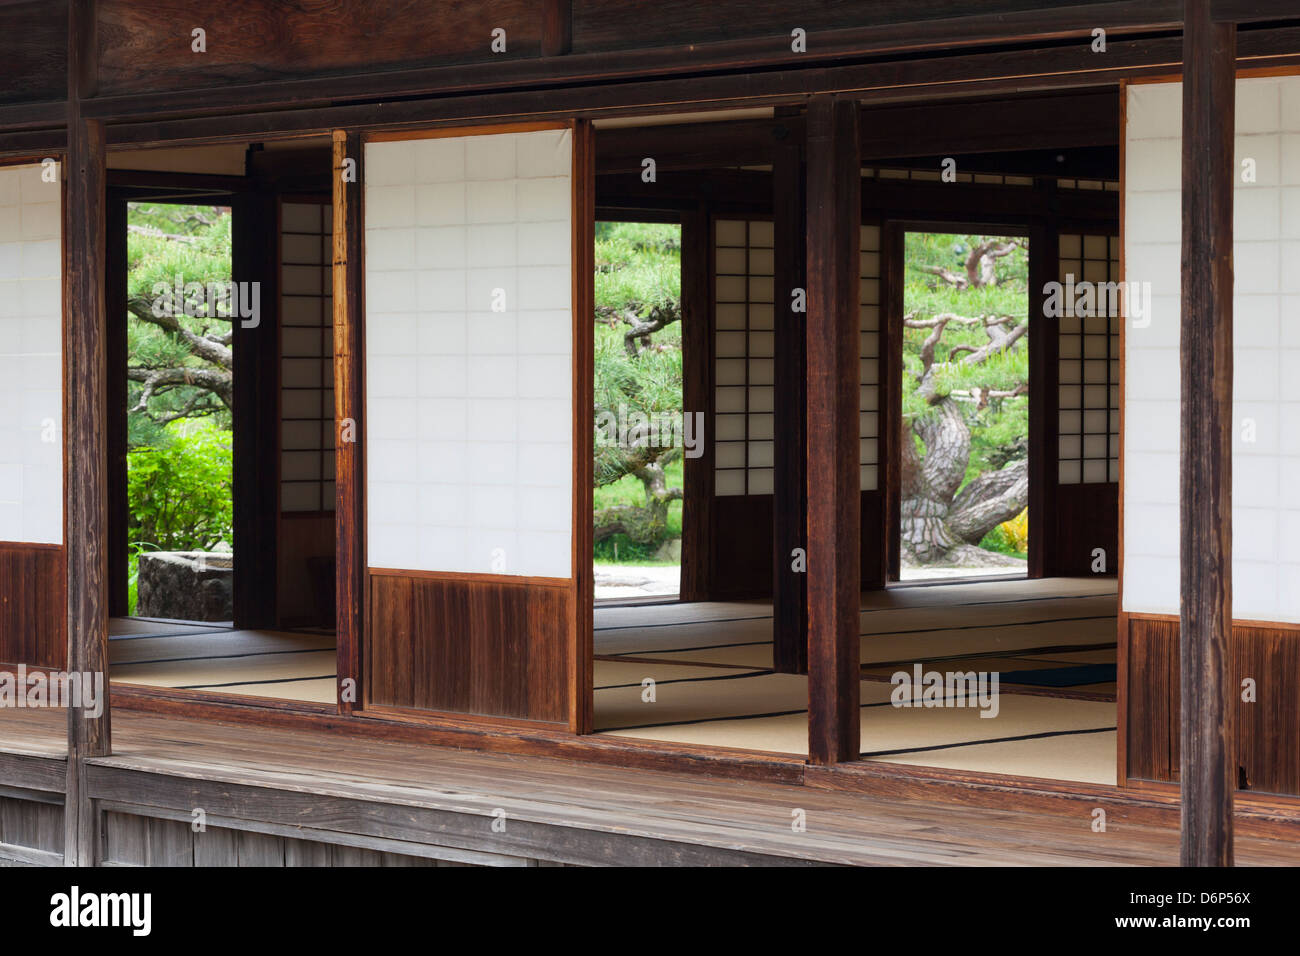 A traditional ceremonial tearoom in a Japanese garden. - Stock Image